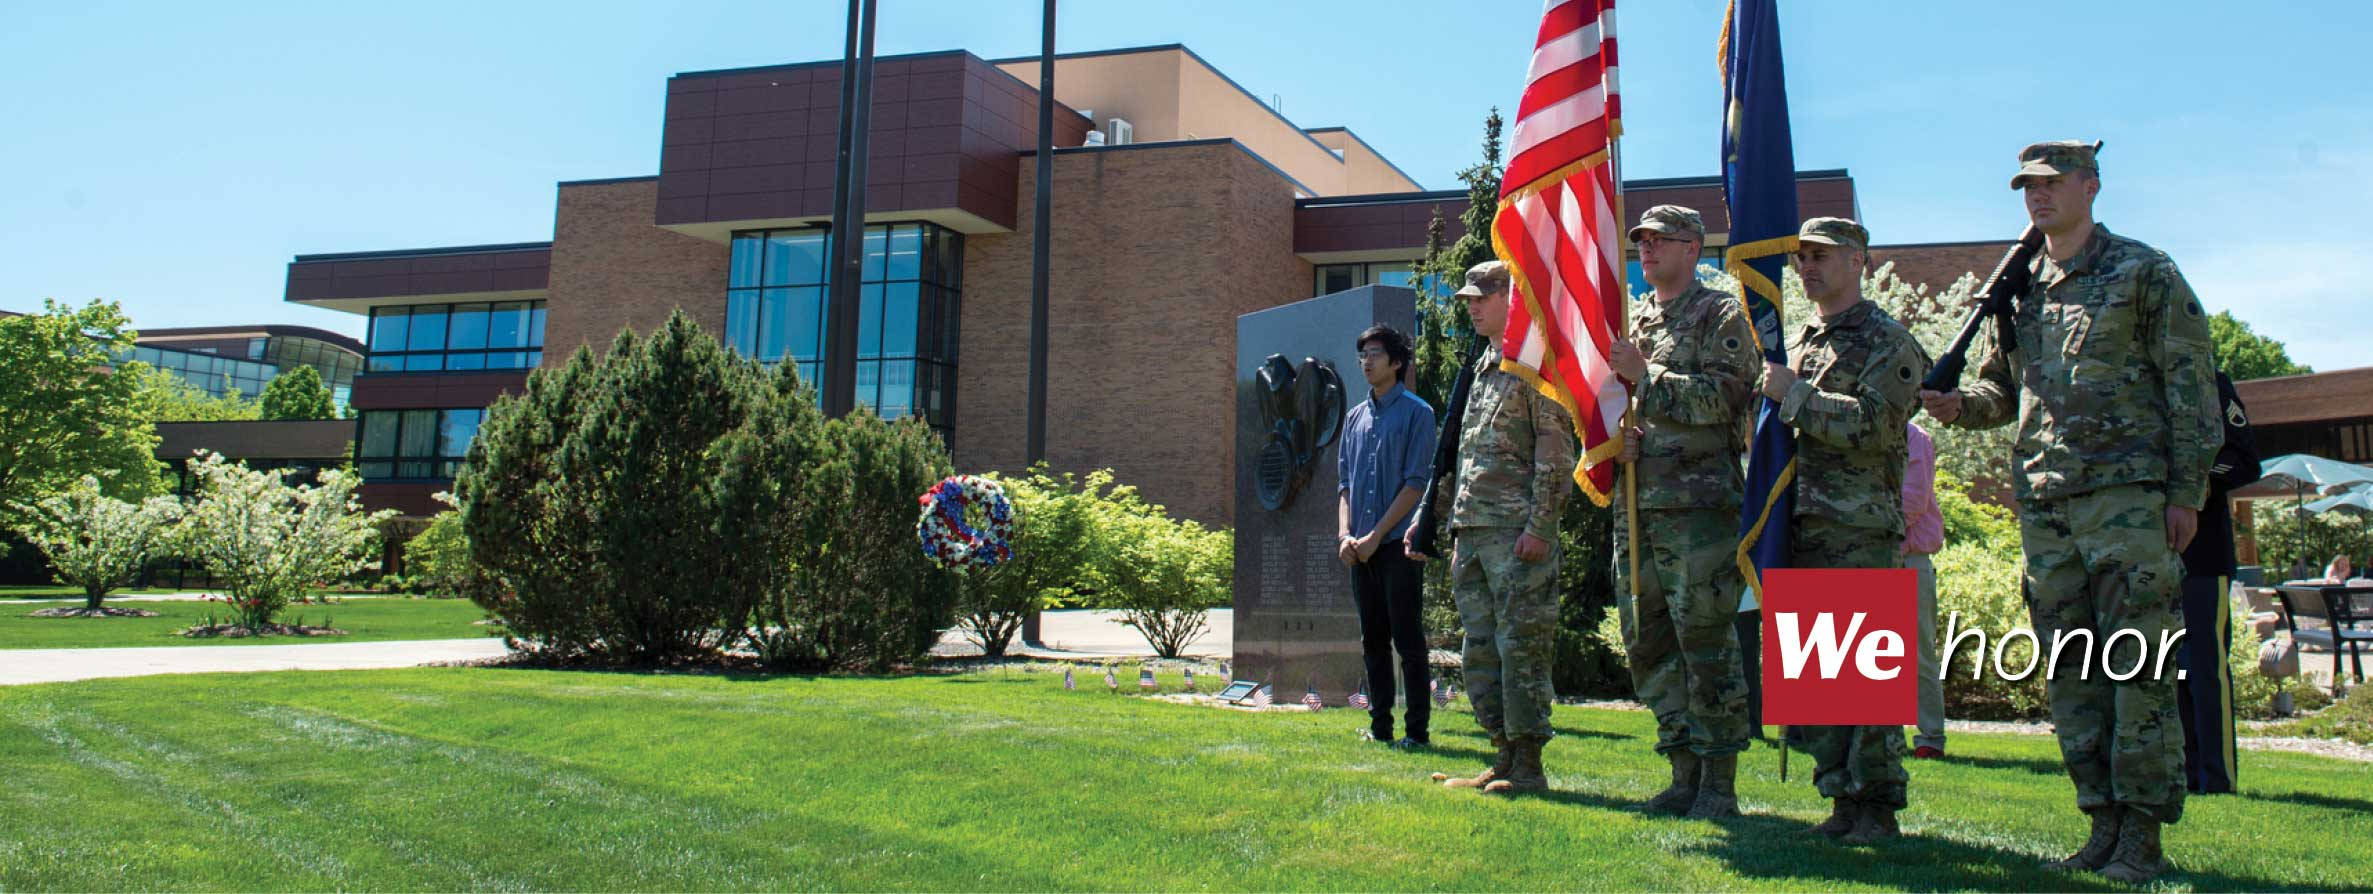 Four military color guard soldiers holding the US and Michigan flags at the Eaton Memorial outside of the Marshall M Fredericks Musuem and Wickes Hall.